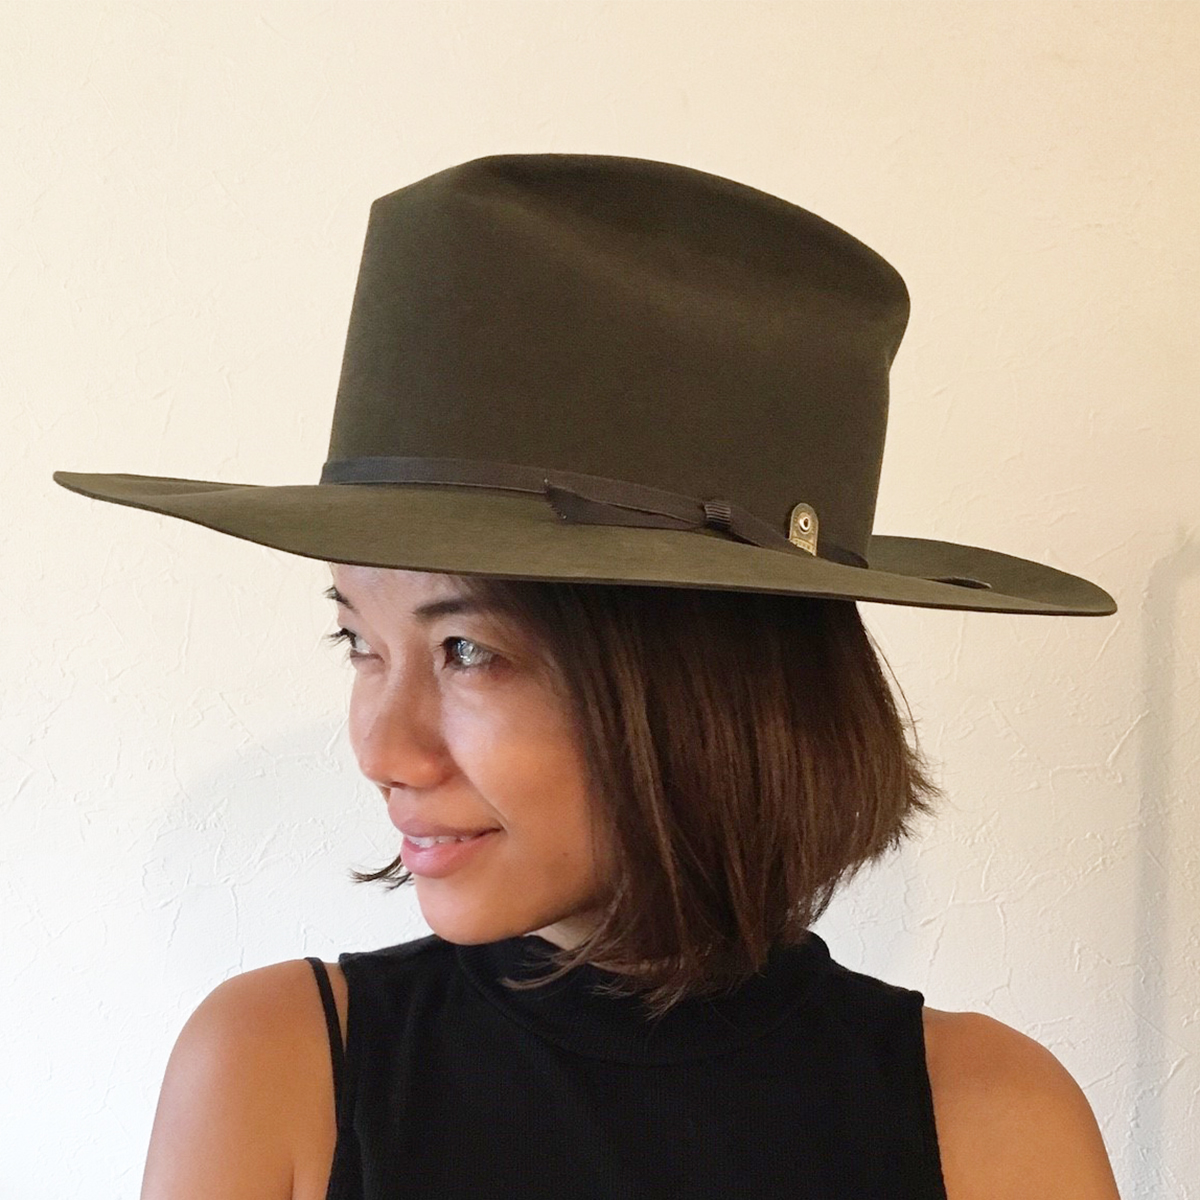 C-PLUS HEAD WEARS ANTEROPE WESTERN HAT